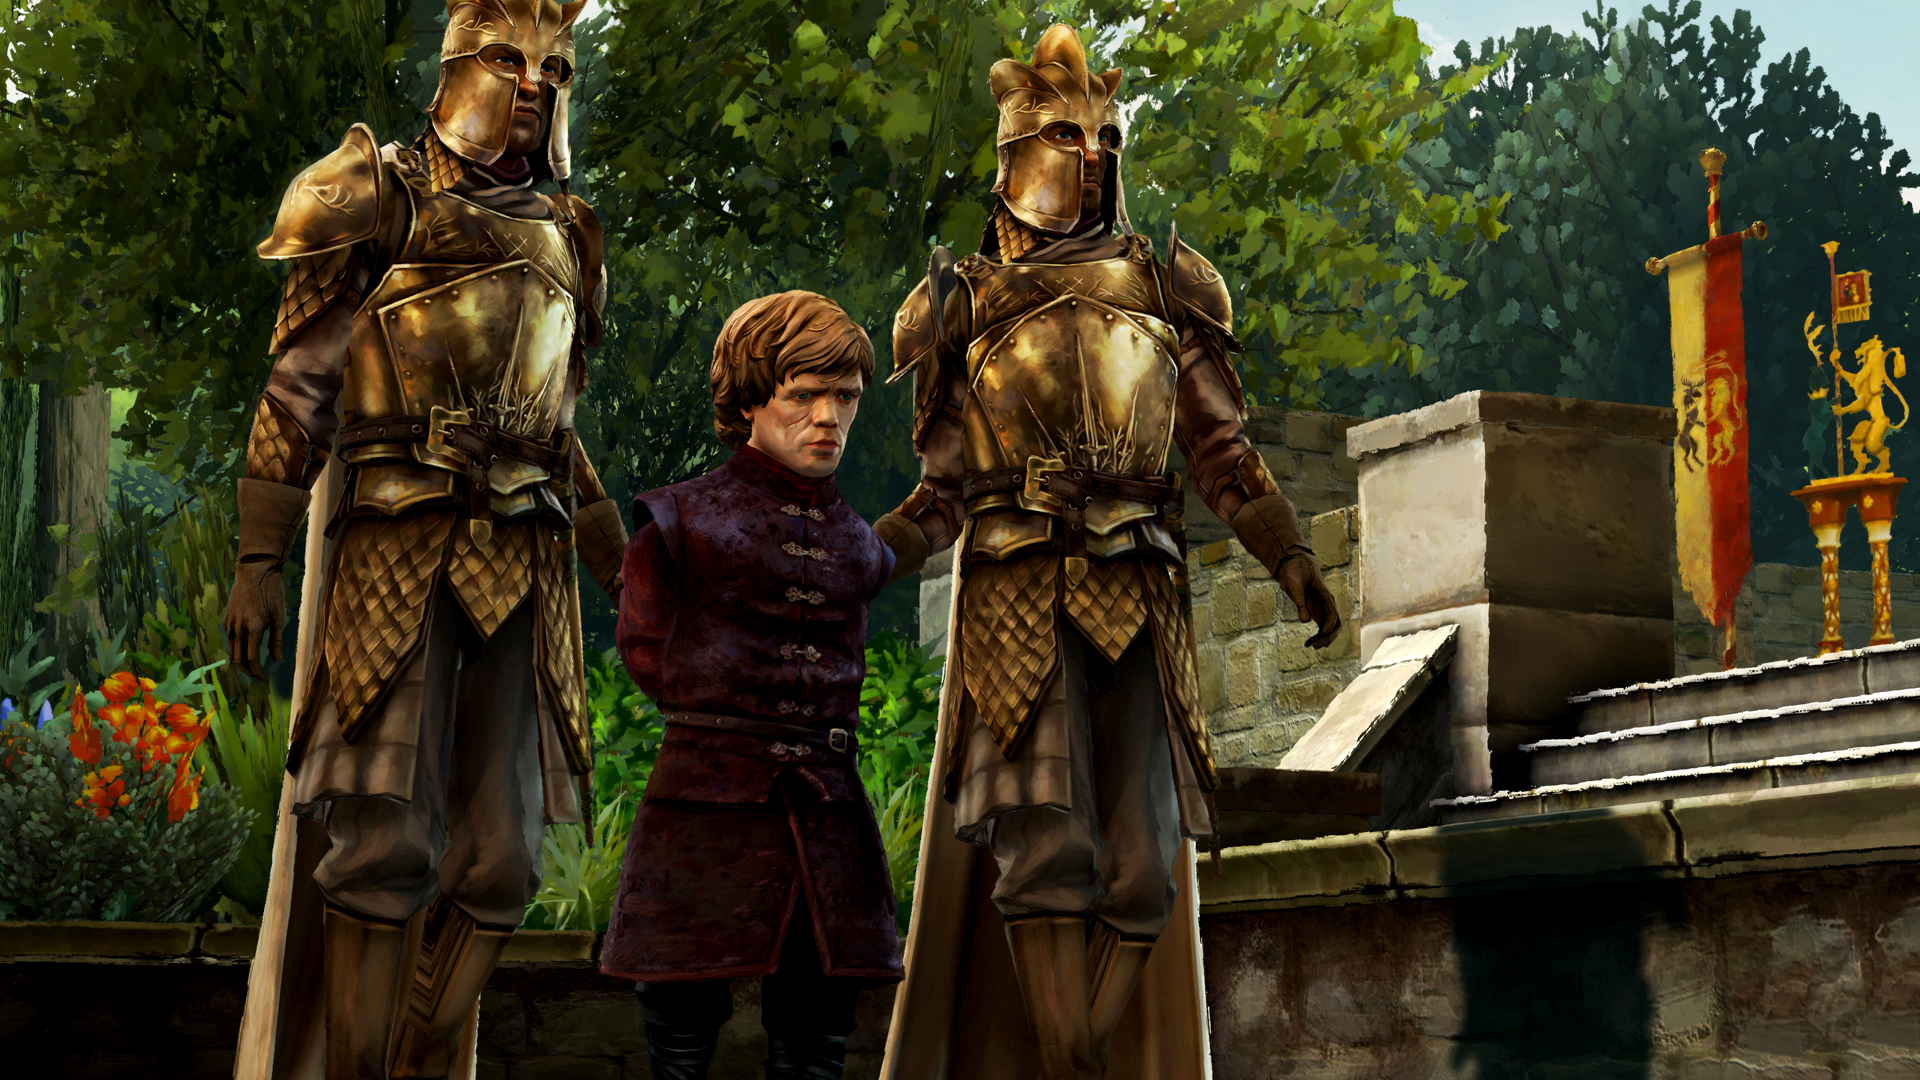 Game of Thrones: Episode 3 - The Sword in The Darkness Review